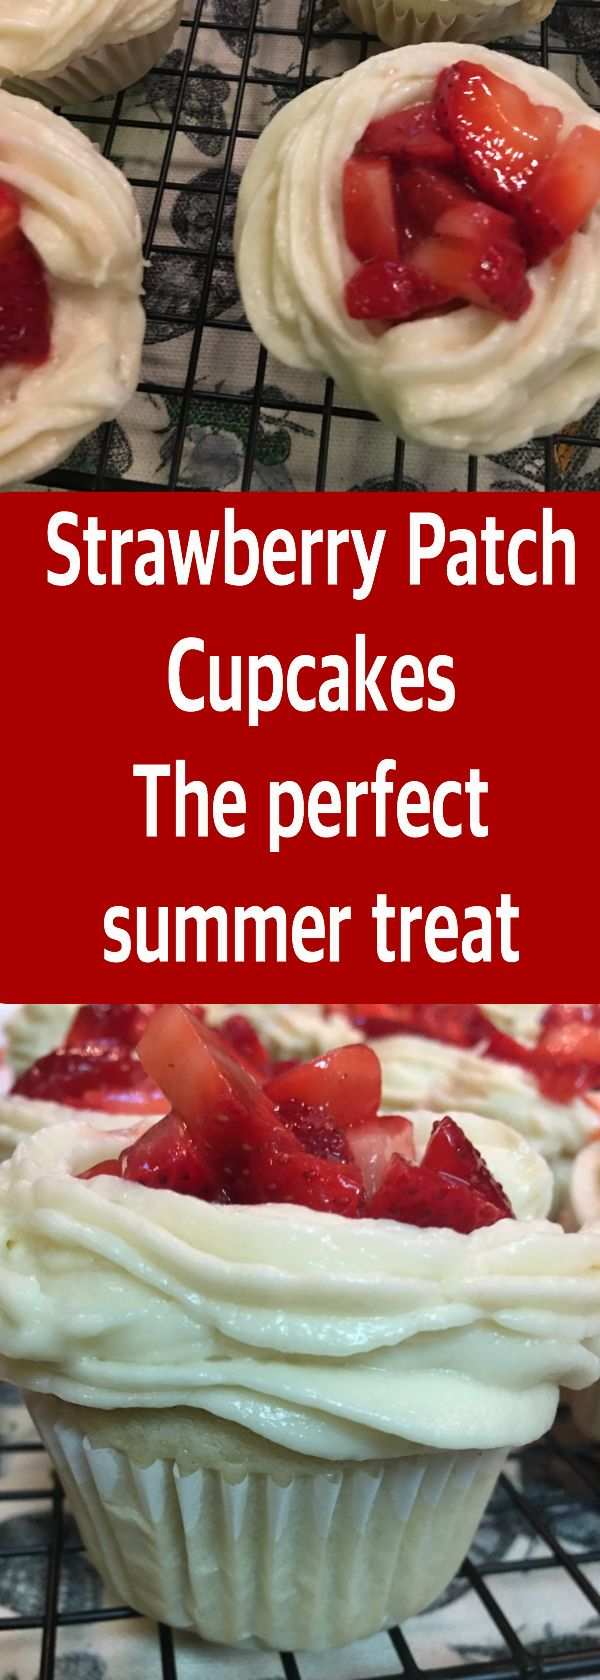 strawberry patch cupcakes make the perfect summer snack with light fluffy cake and fresh strawberries